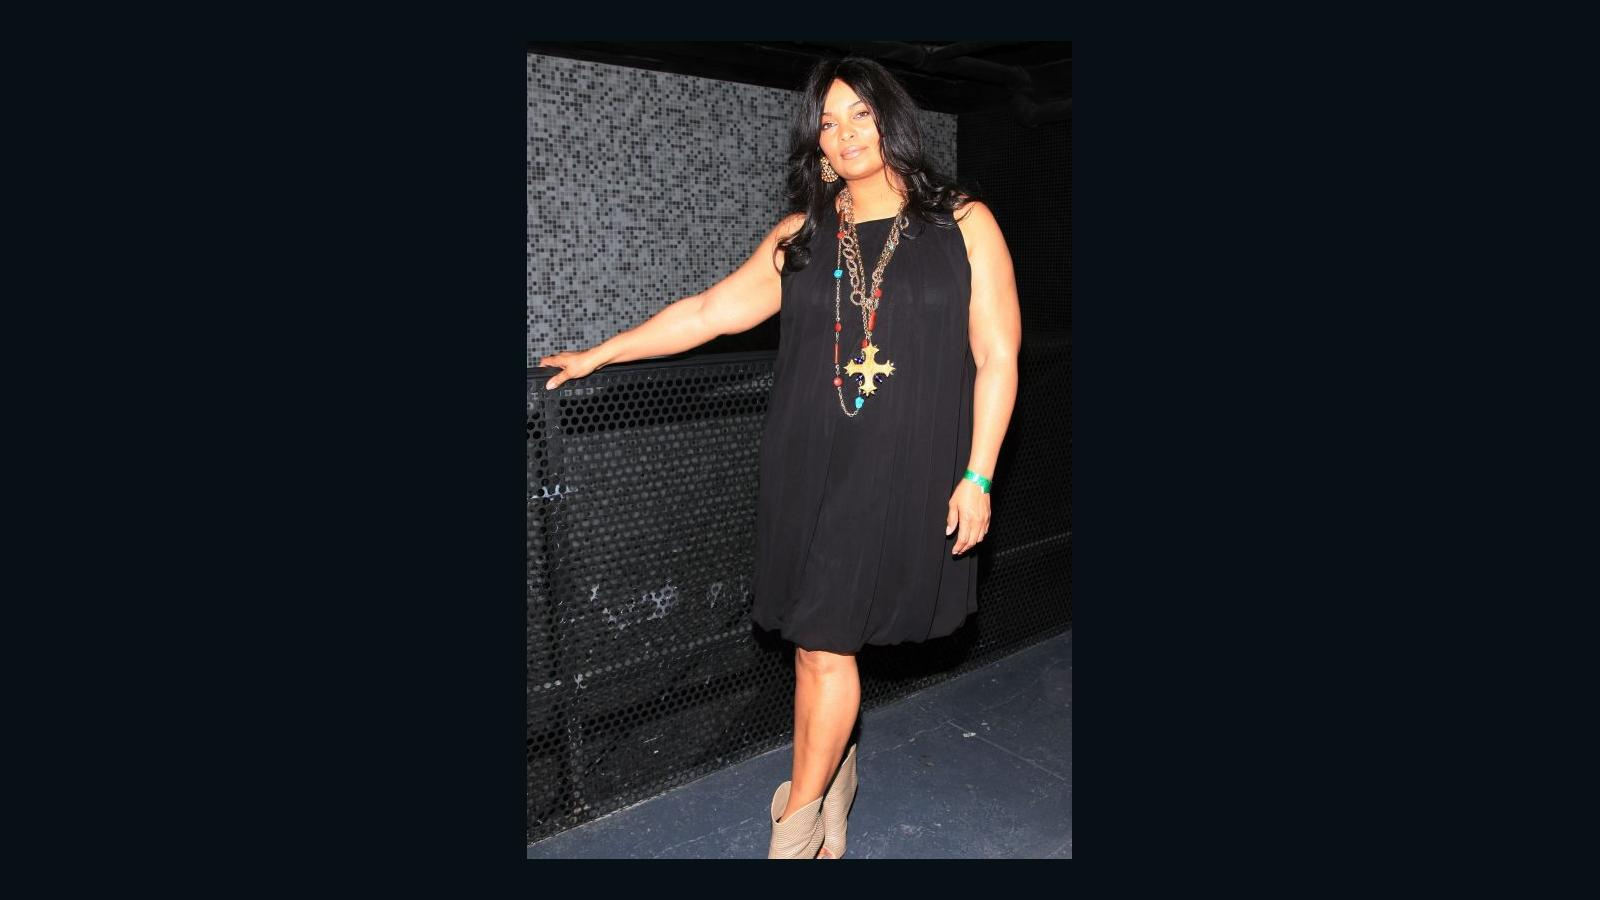 Toccara jones plus size black models join. was